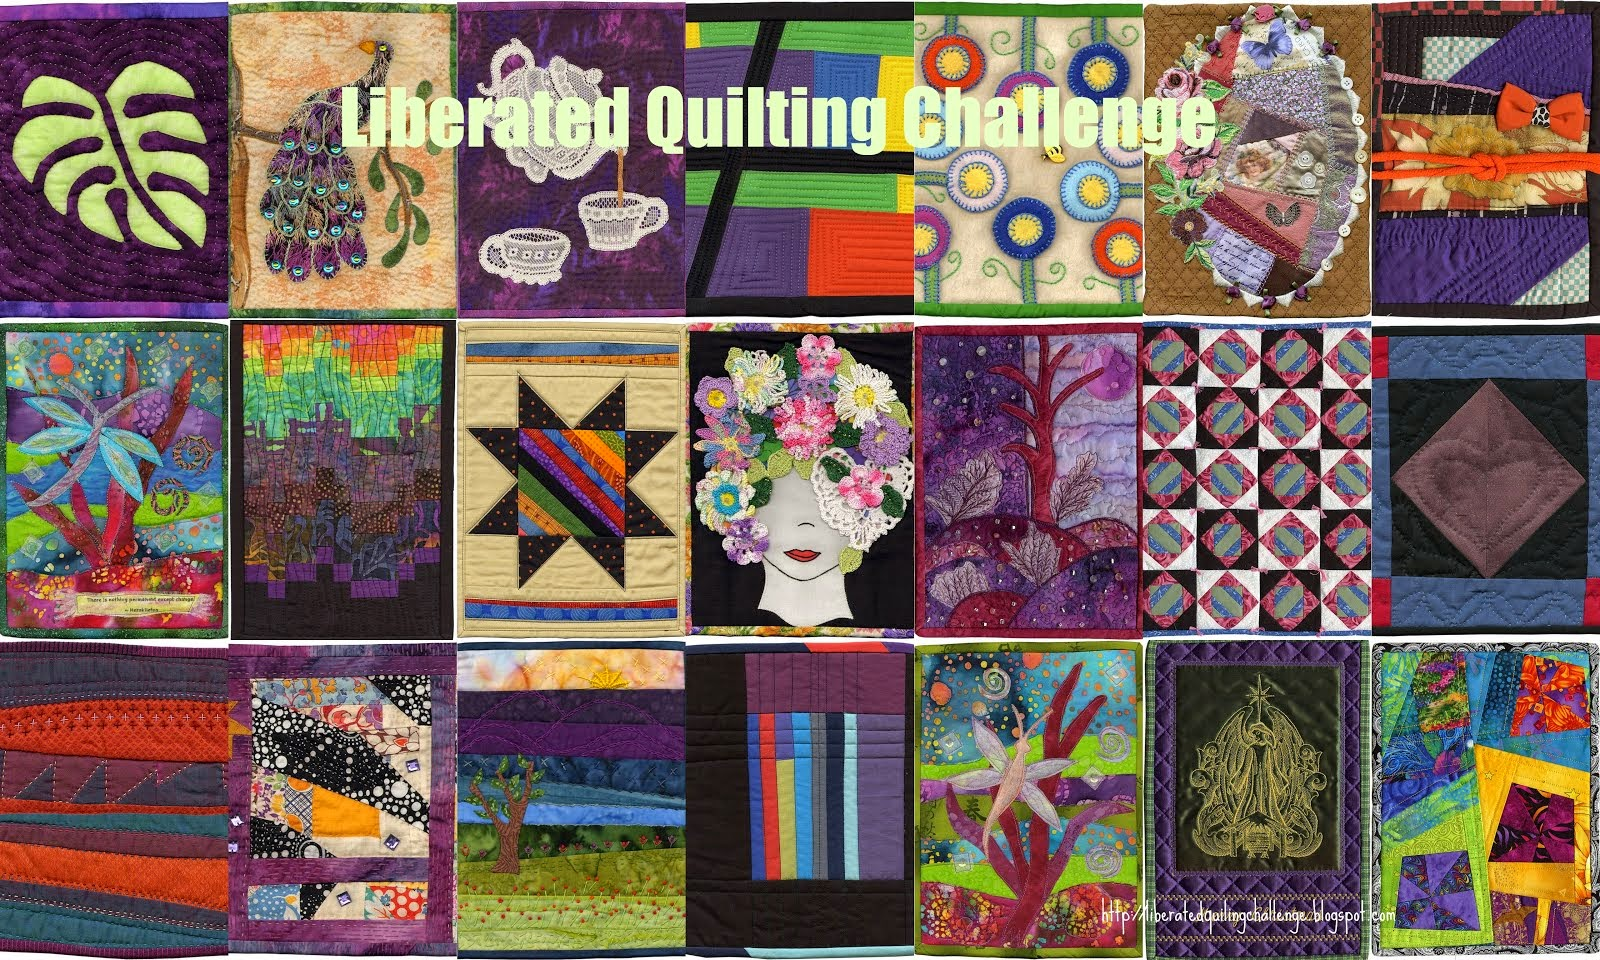 Liberated Quilting Challenge